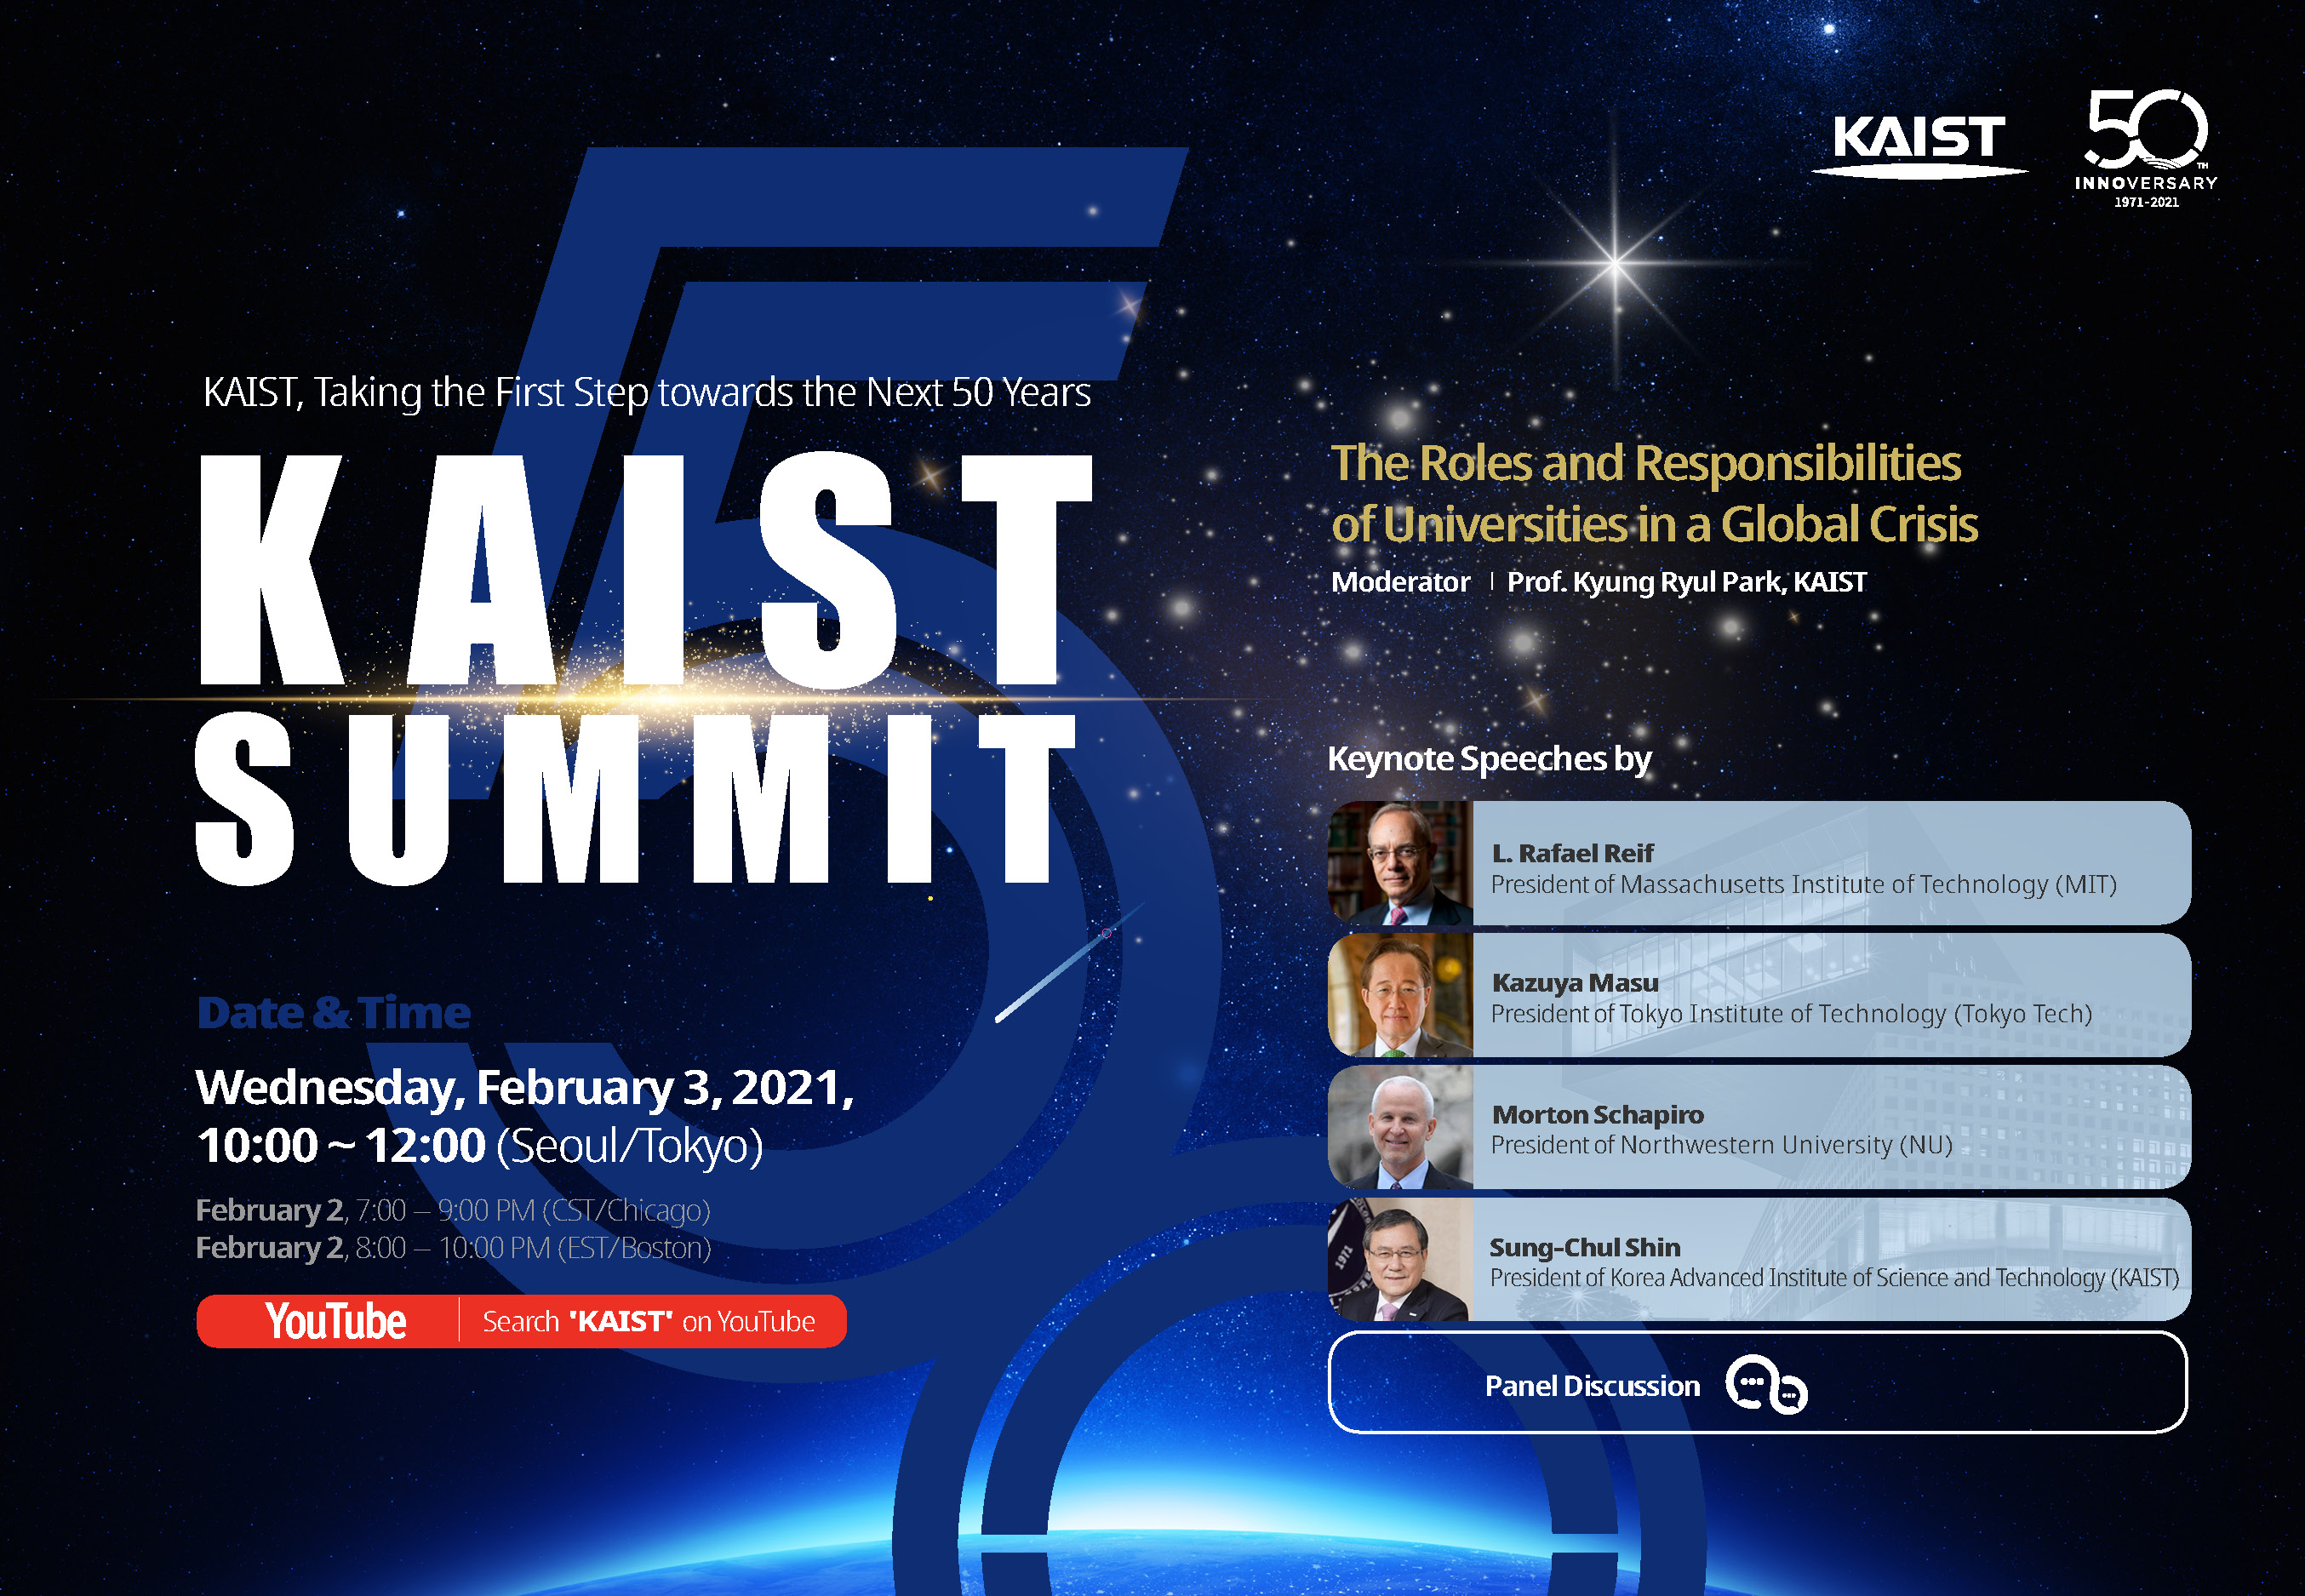 Top University Leaders Urge Innovation for the Post-COVID Era at the KAIST Summit 이미지